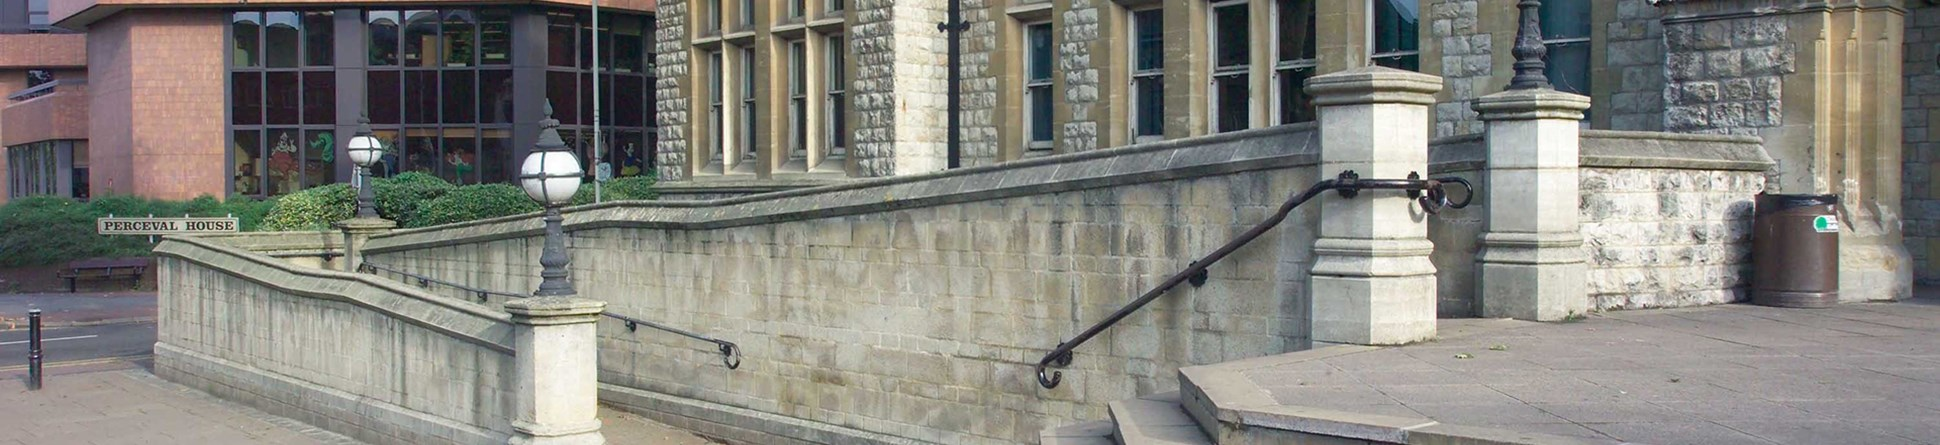 image of a ramp at Easling Town Hall, London, illustrating easy access to historic buildings